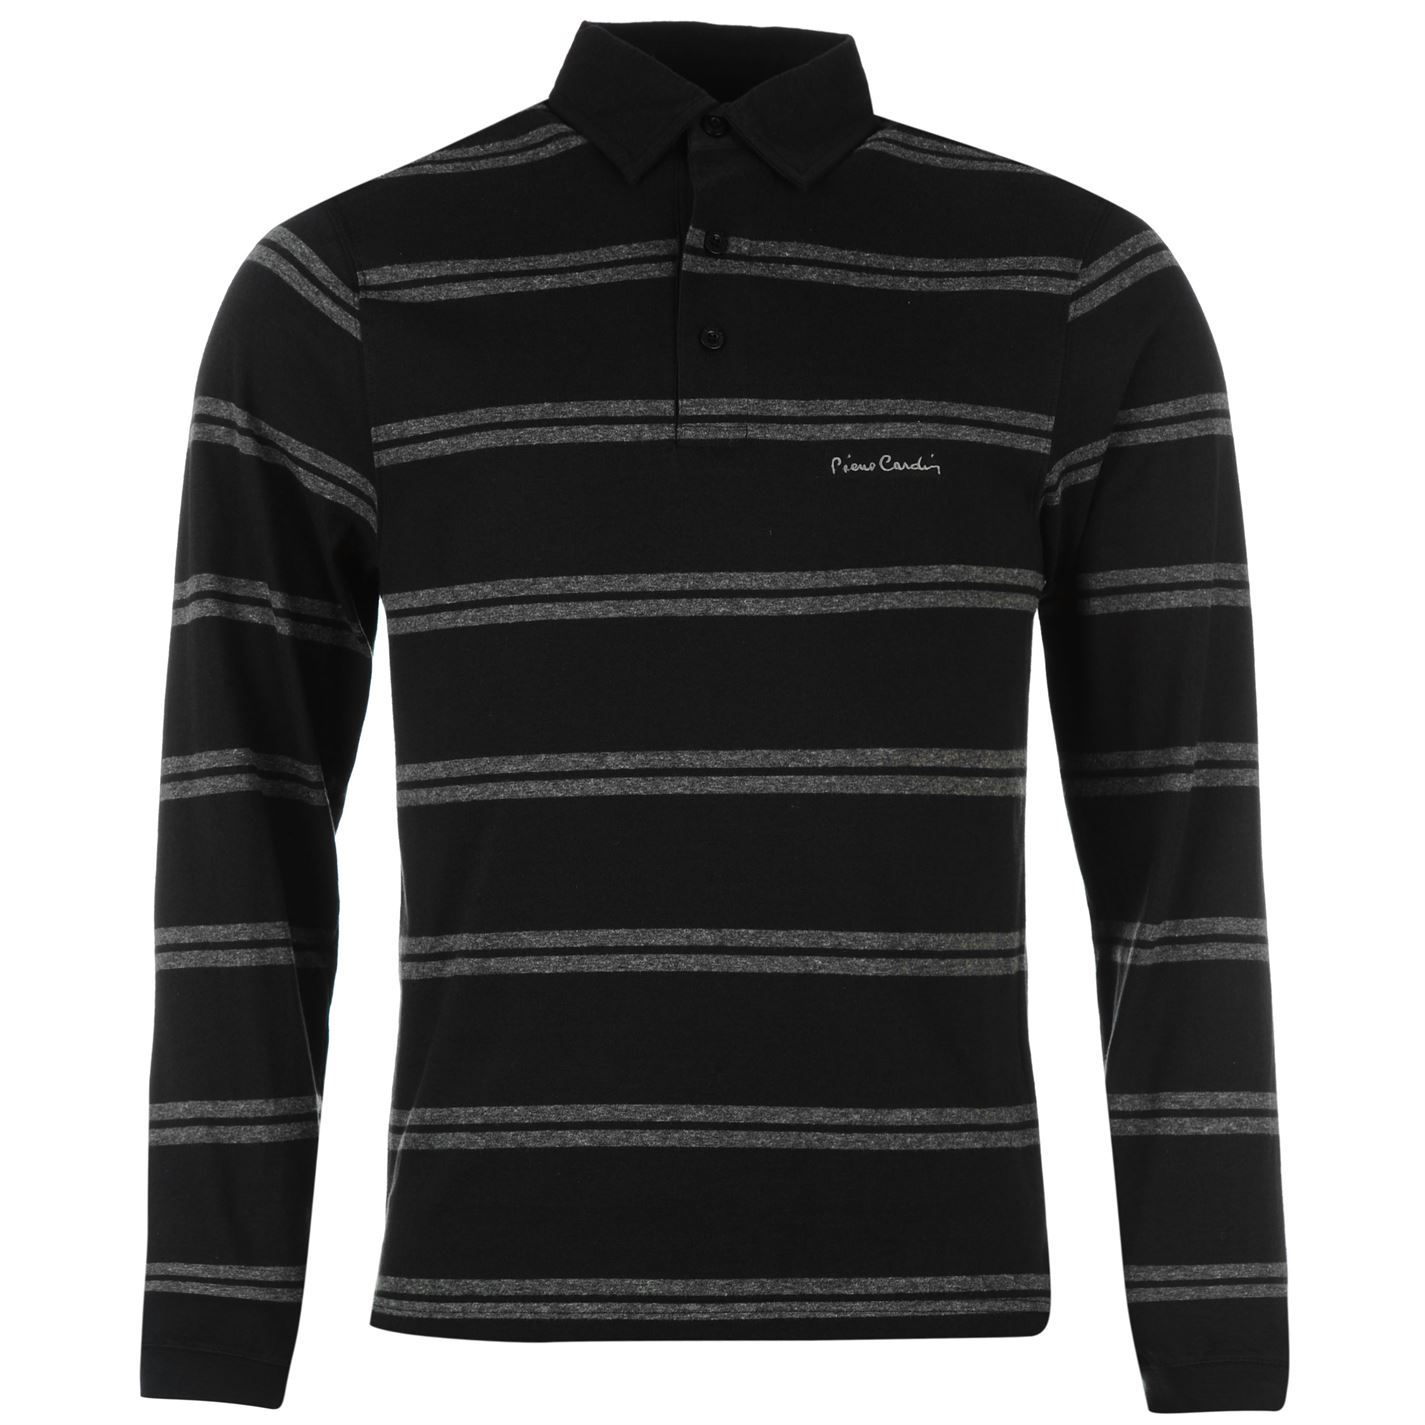 pierre cardin long sleeve polo shirt mens black top t. Black Bedroom Furniture Sets. Home Design Ideas